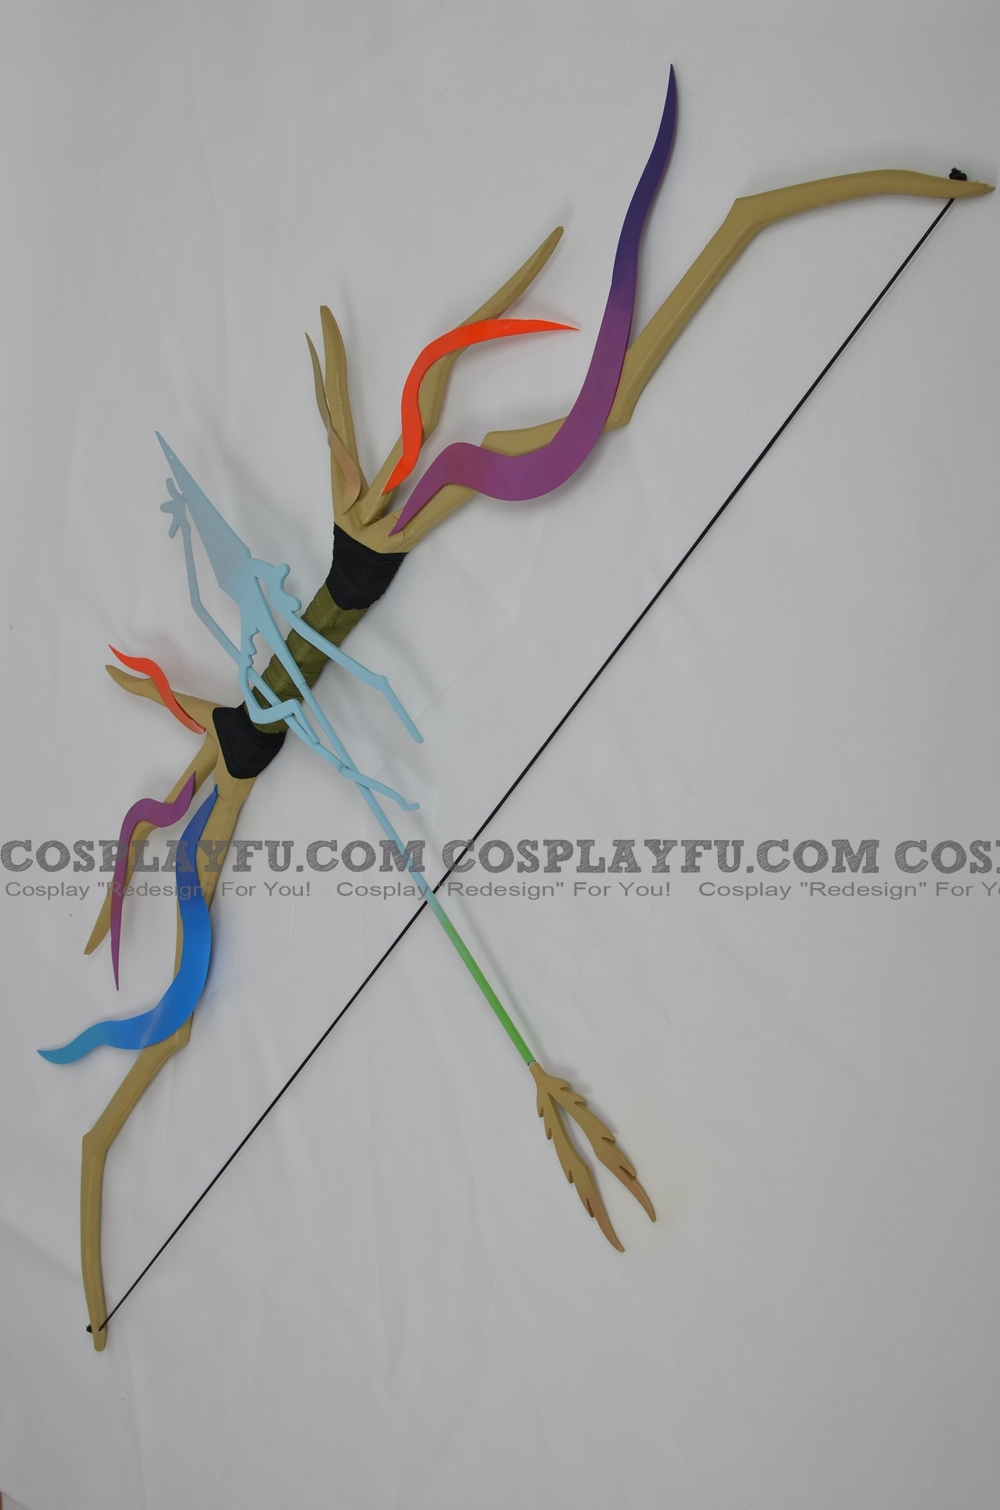 Xerneas Props (Bow and Arrow) from Pokemon